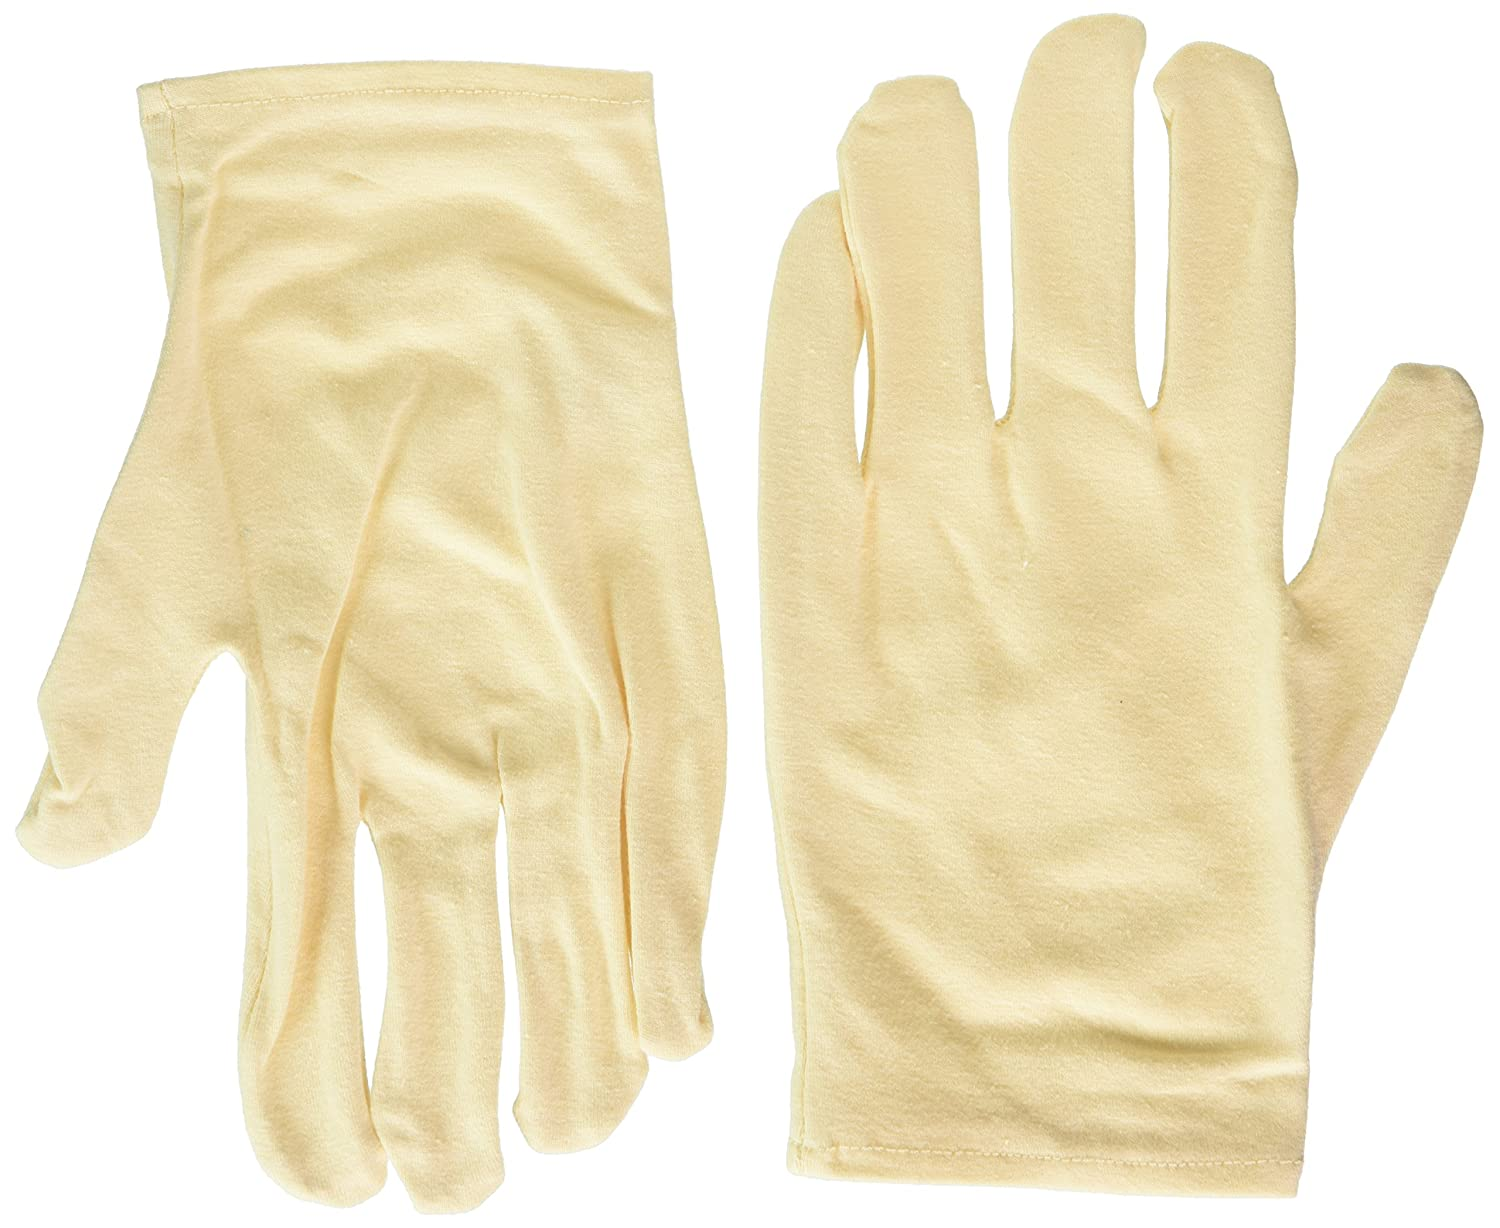 Earth Therapeutics Moisturizing Hand Gloves Solid Color-Natural 1 pair